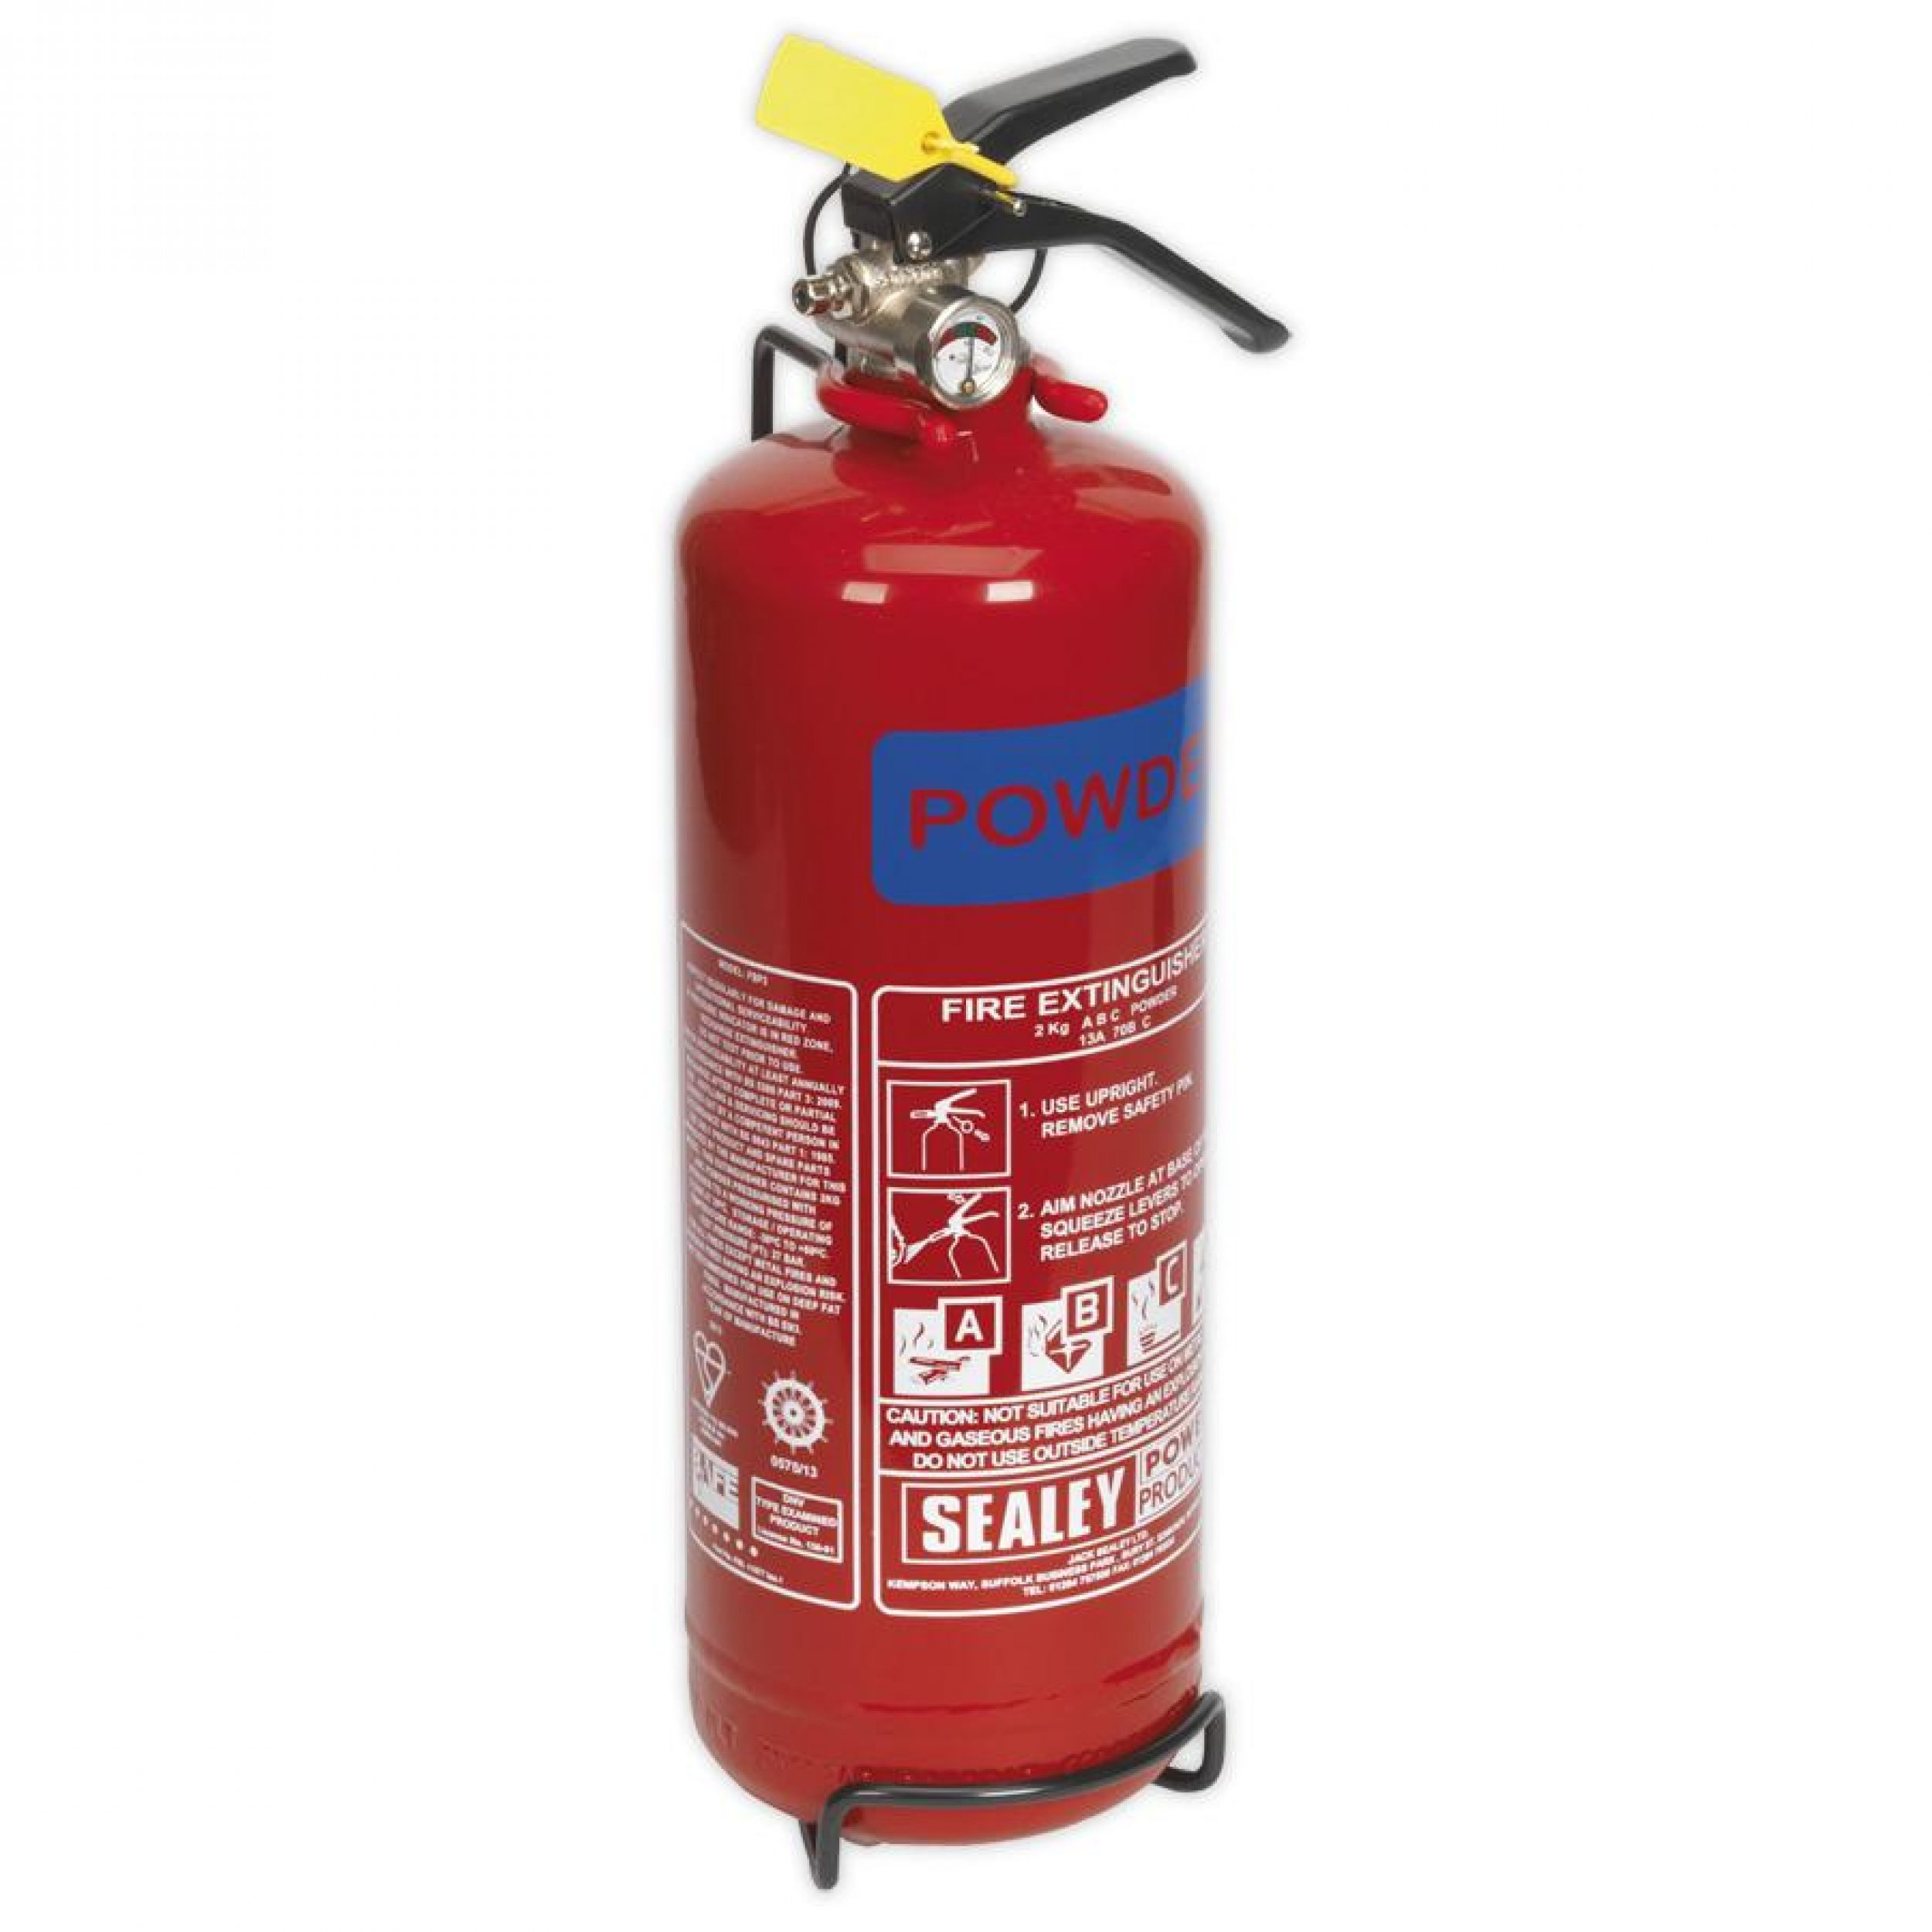 fire-extinguisher-2kg-dry-powder-1513321387-518454441-f6571d917da56d3b8689877adabd917e